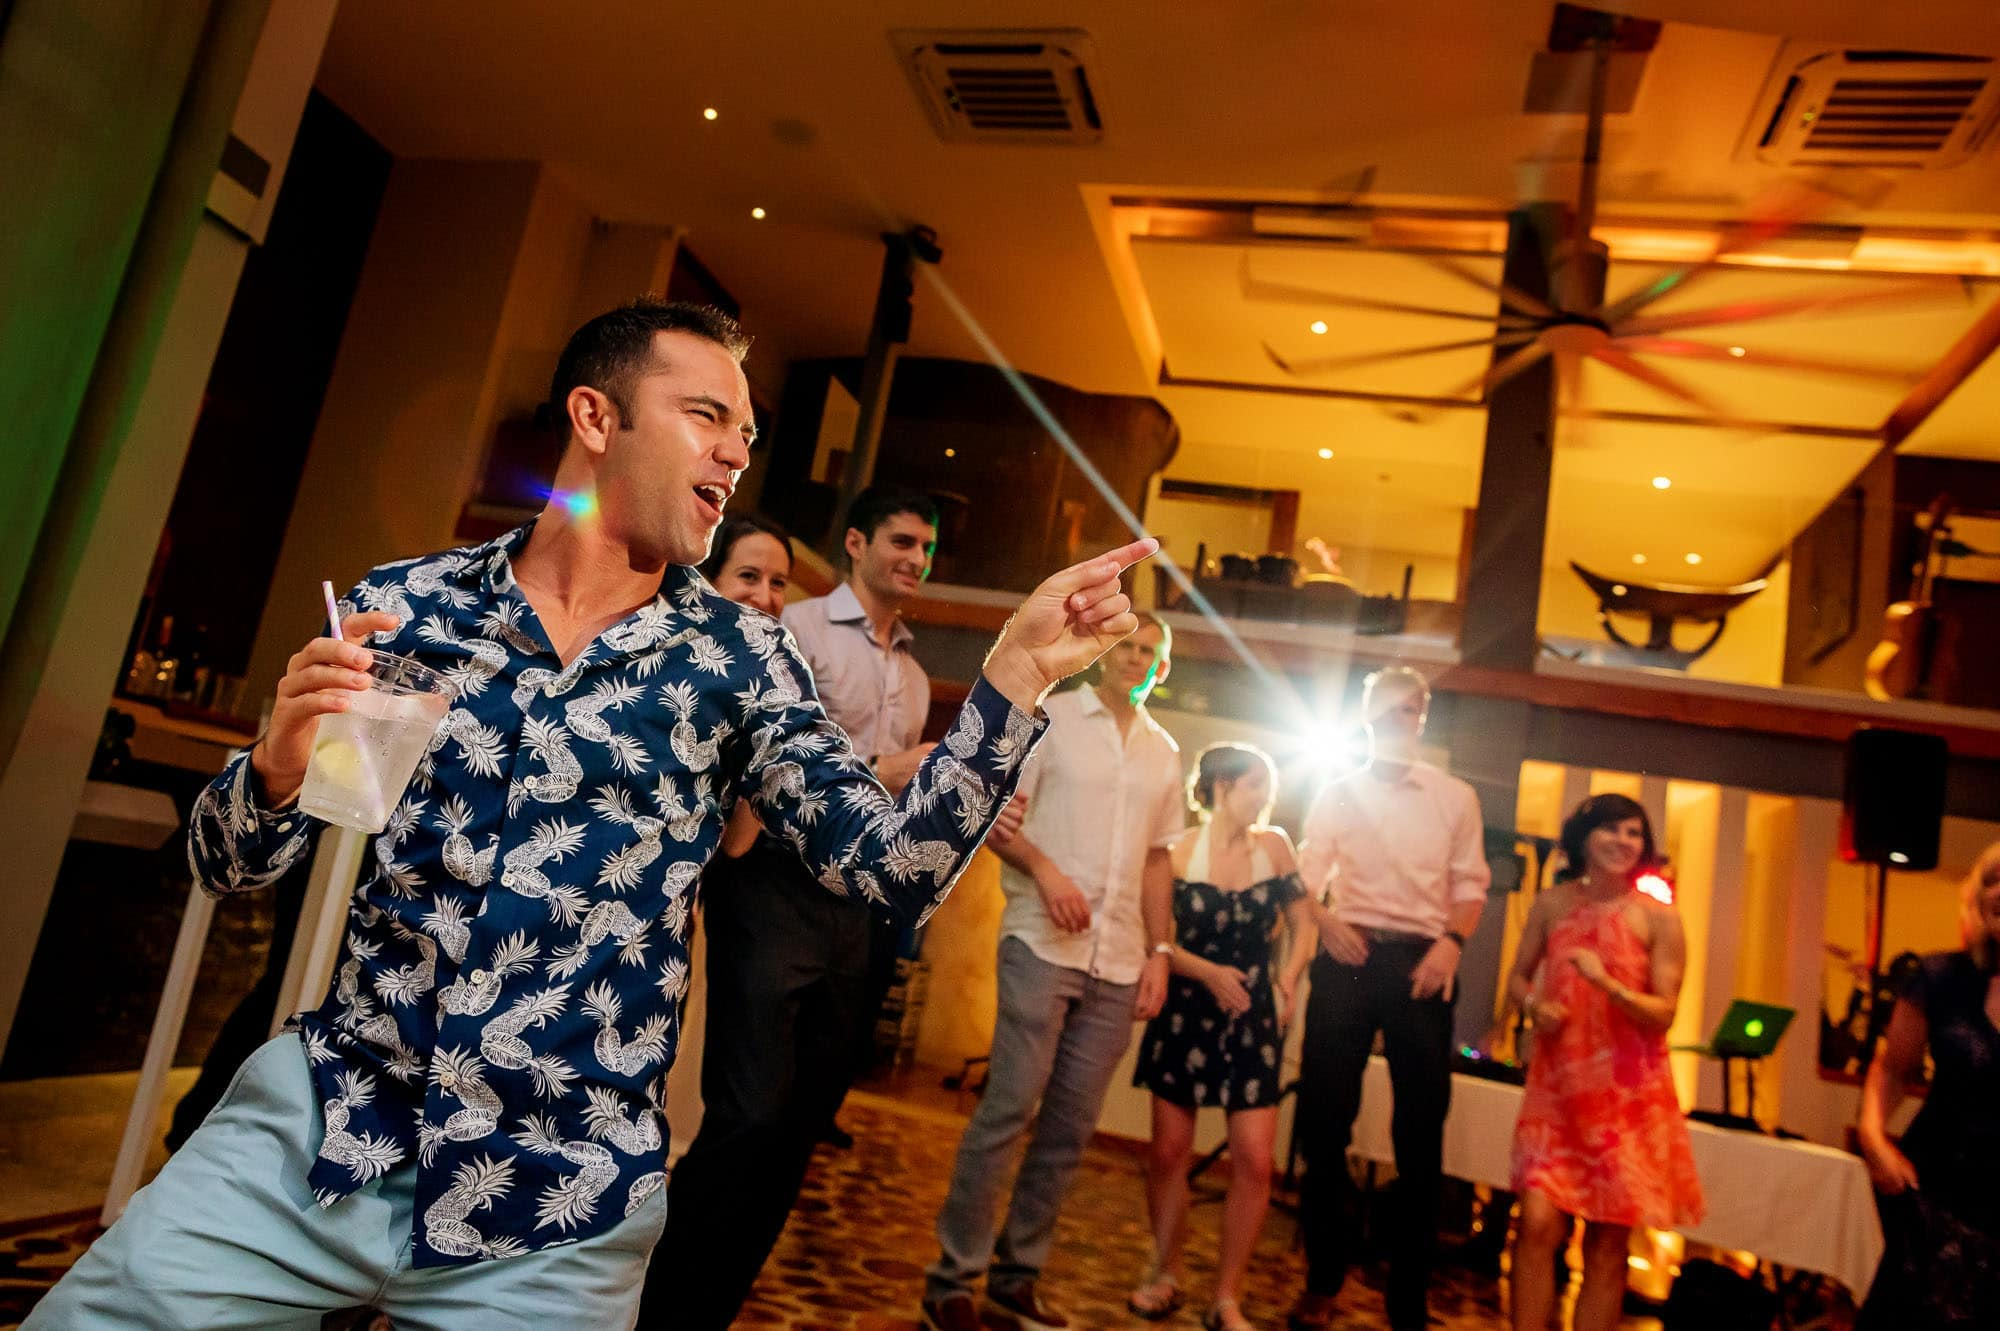 Getting married in a private villa means dancing the night away